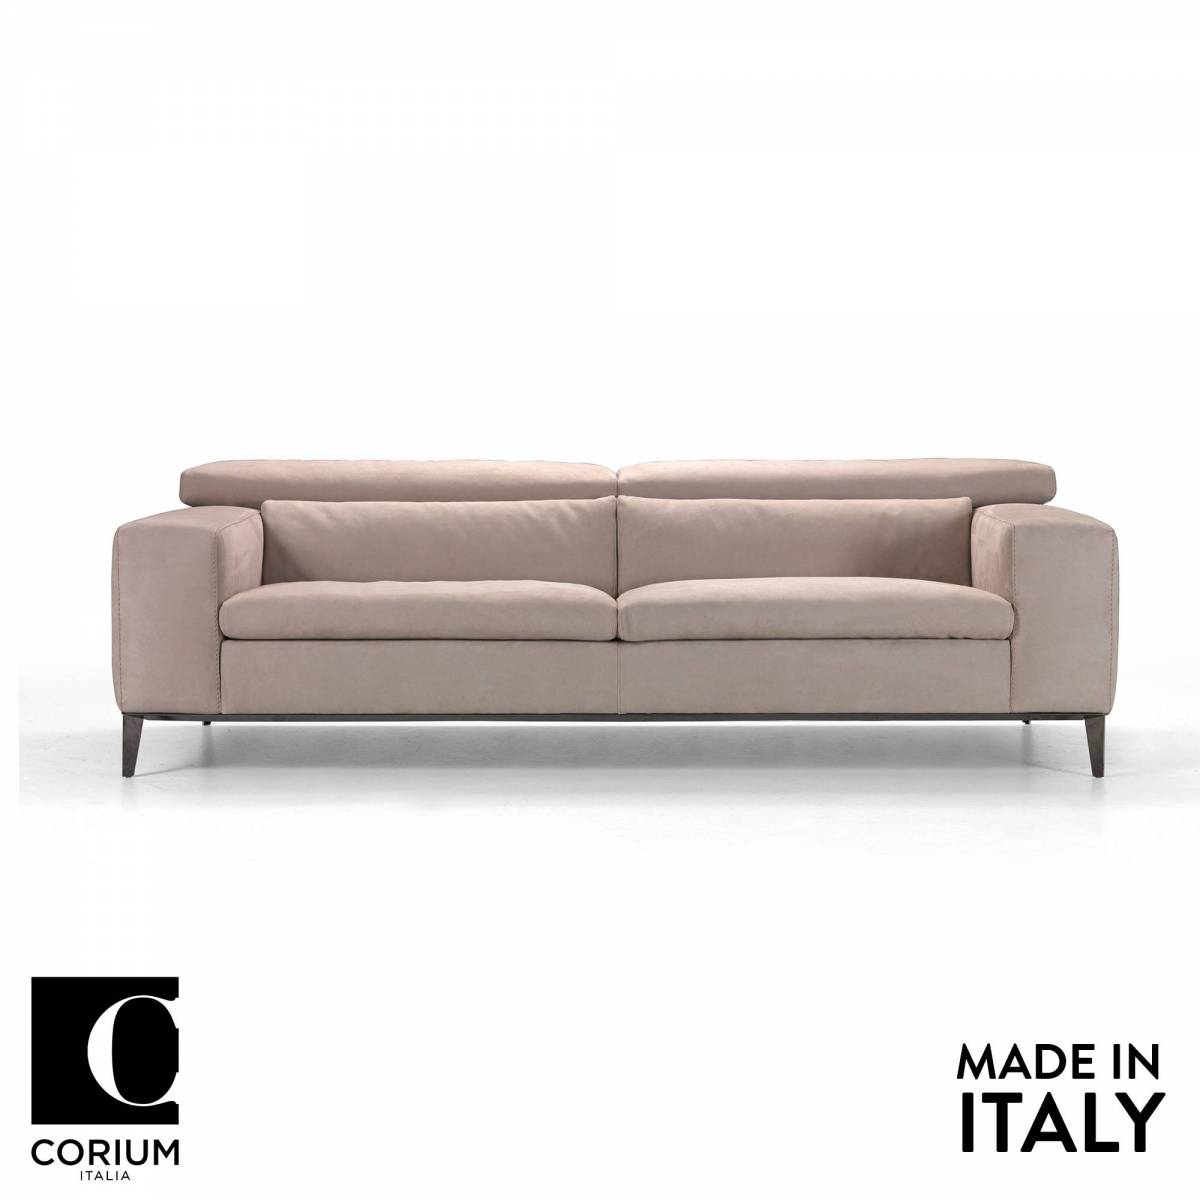 Italian Sofa Auckland Sofa Made In Italy Leather Italia High Quality Italian